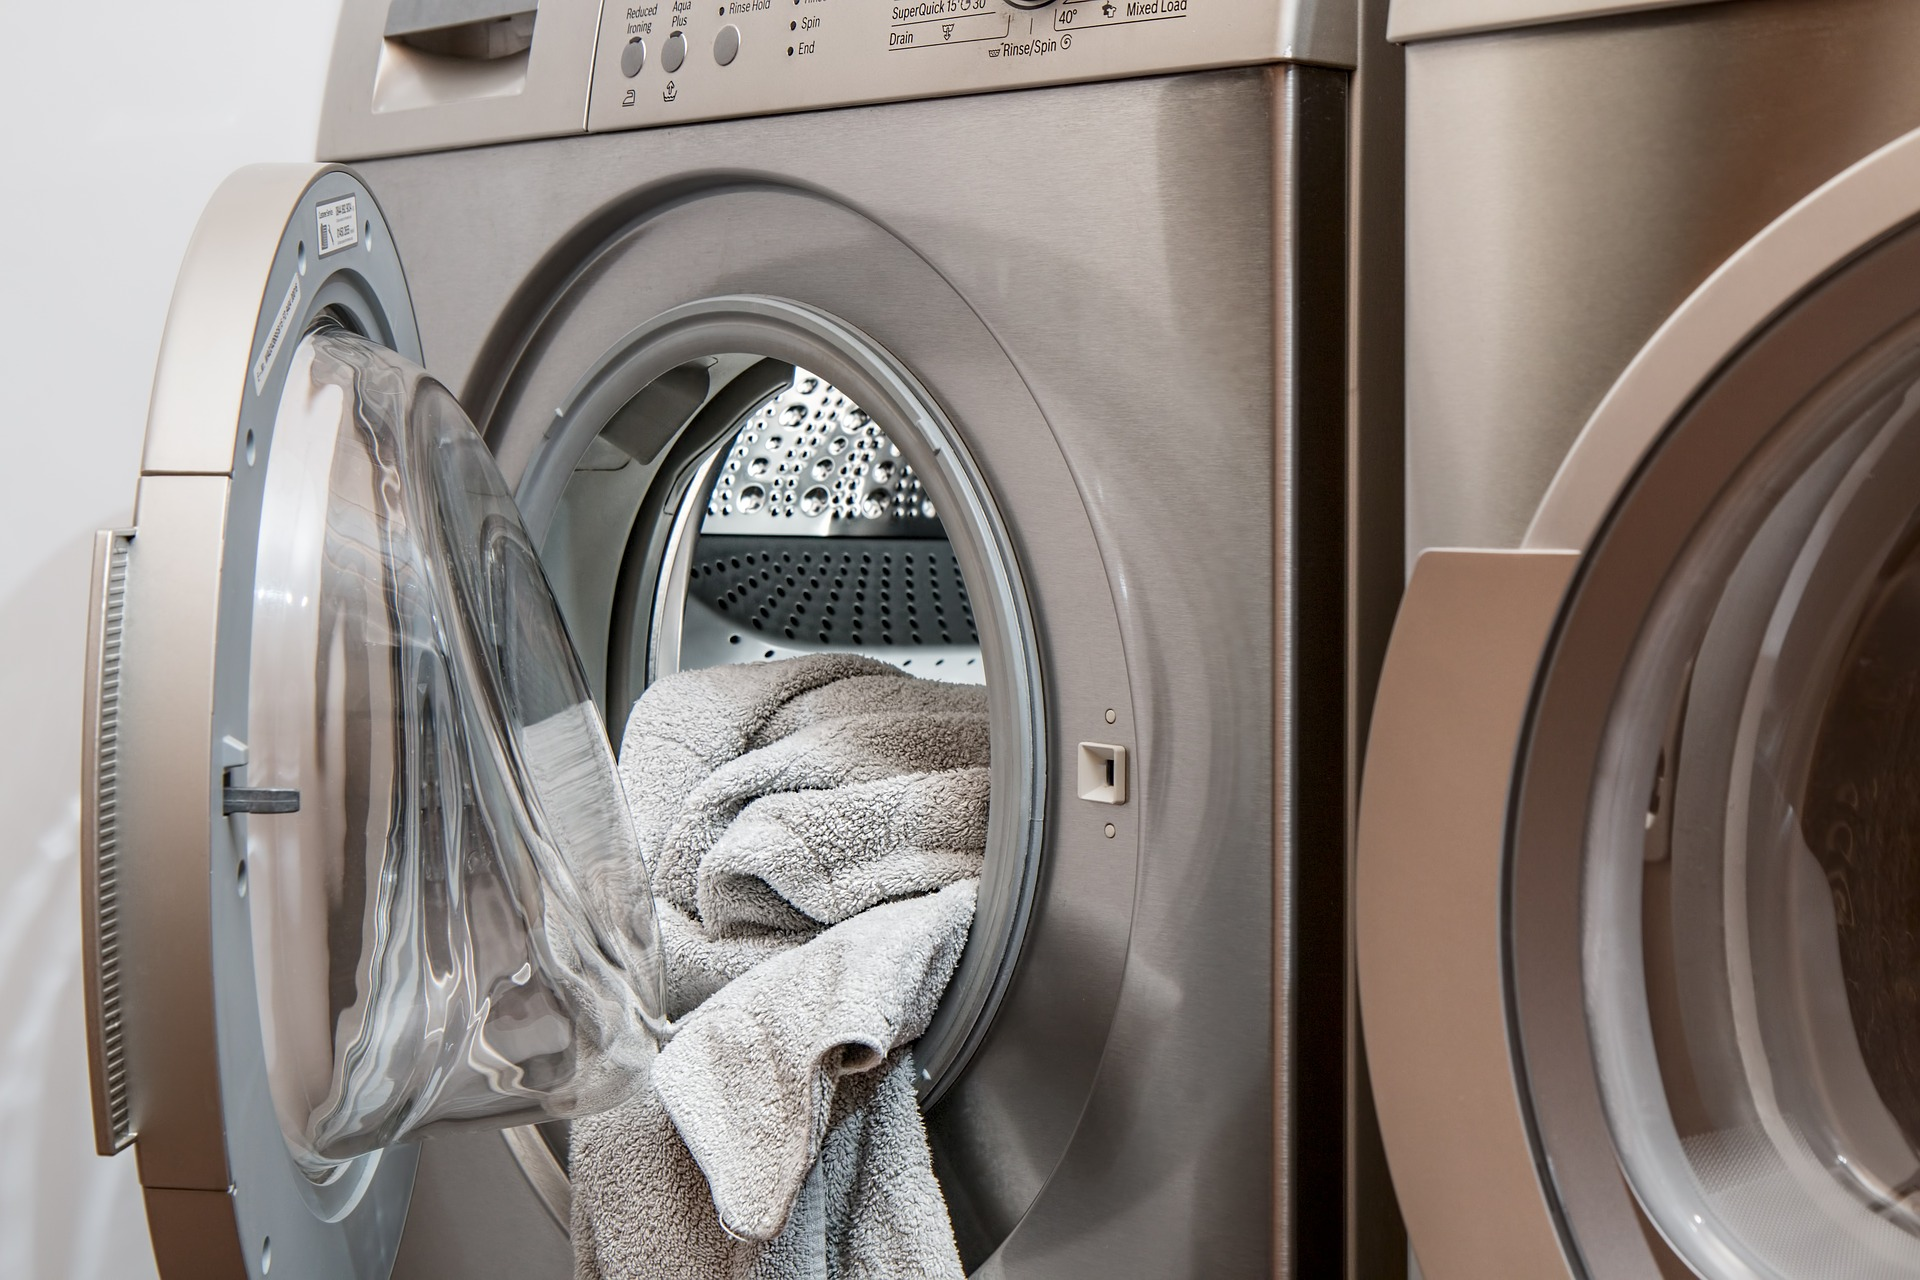 Clothing dryer open with towel inside